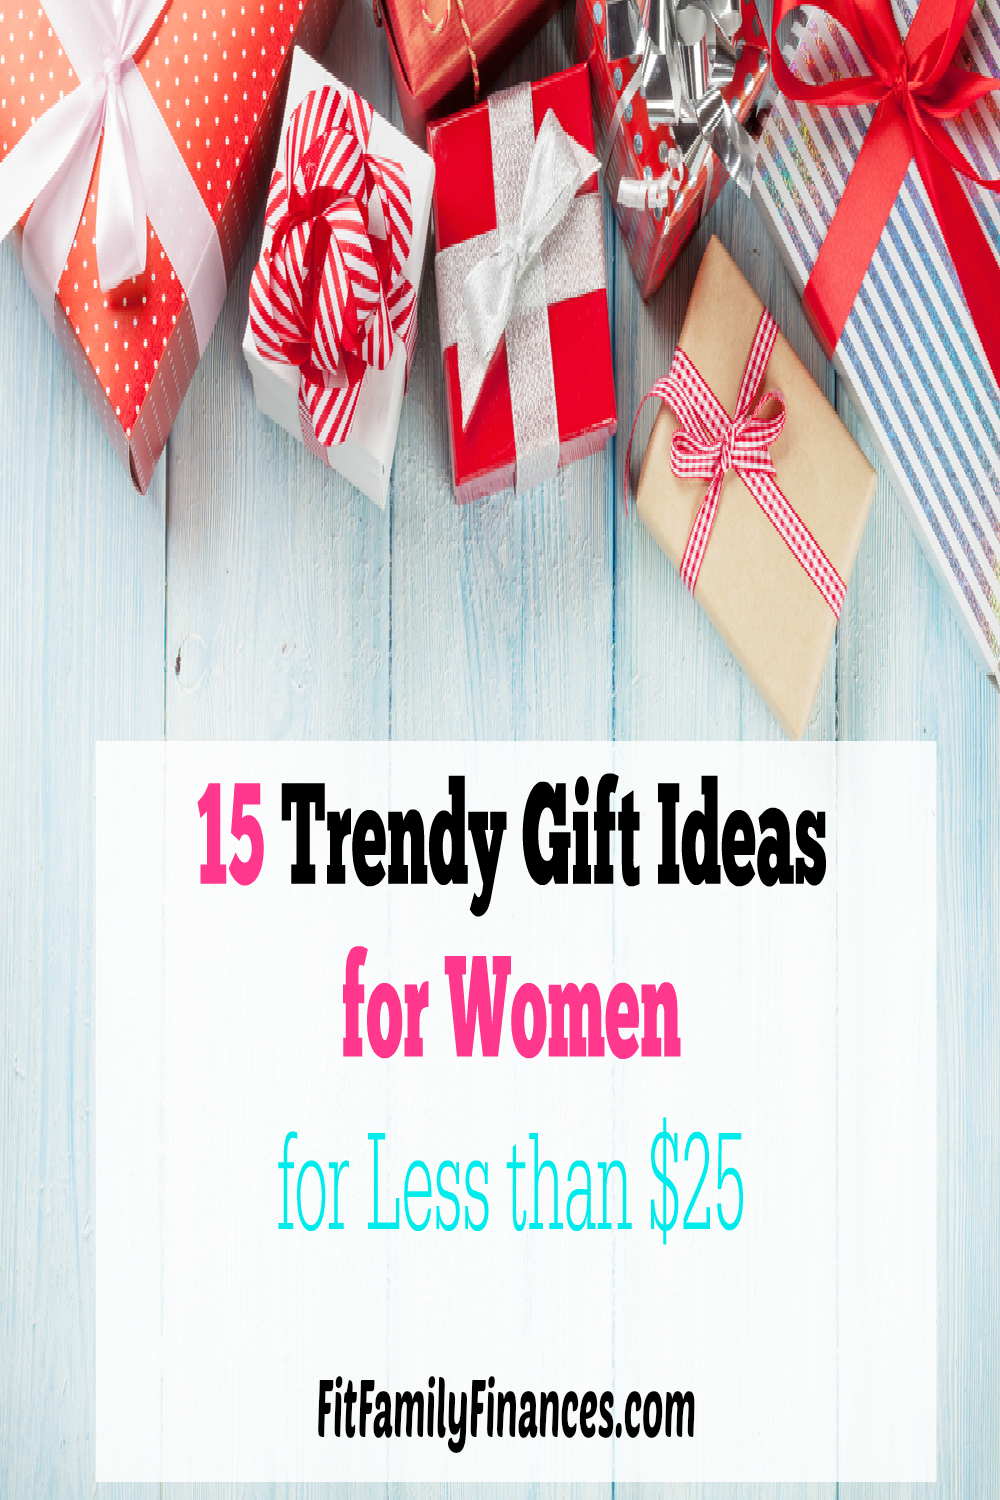 love this list of stylish gifts i can get my sister and friends even though im on a budget